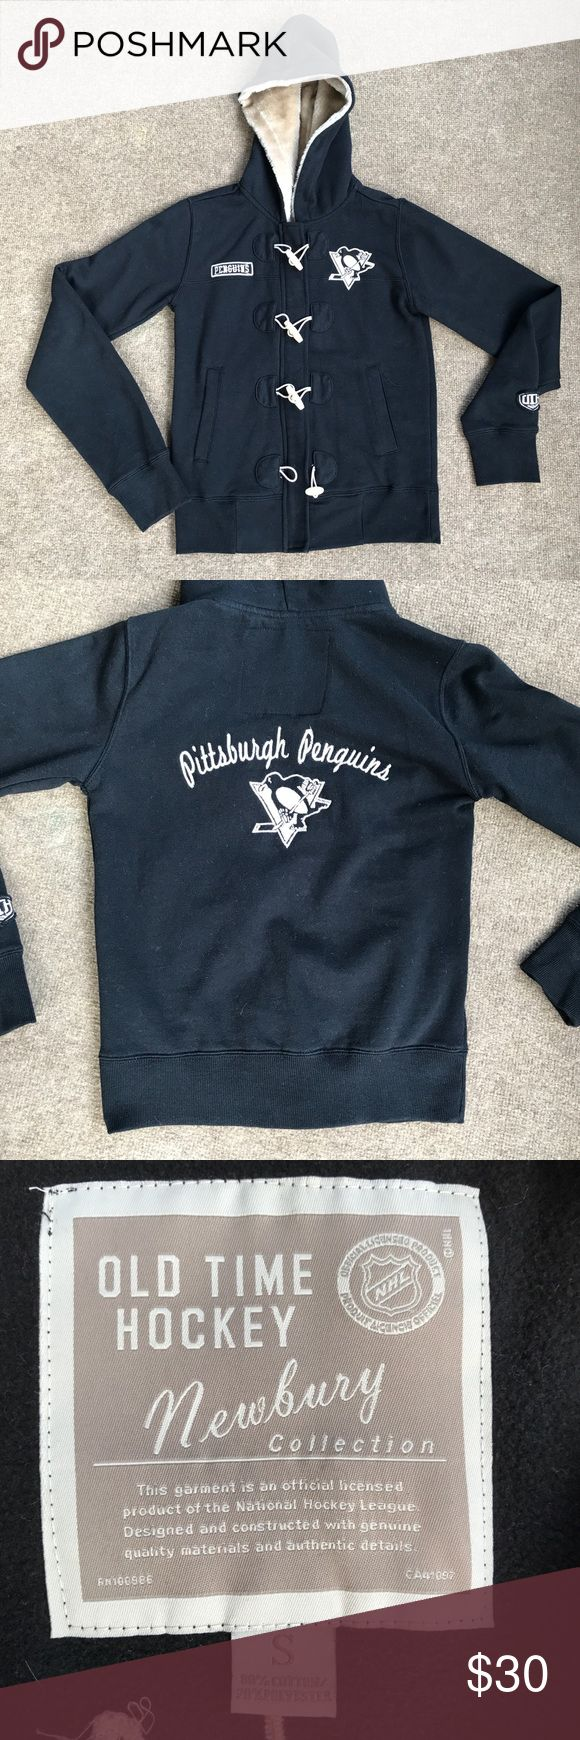 Pittsburgh Penguins Fleece Jacket Old time hockey brand   Size women's small   Sherpa lined hood, zip up fleece jacket with toggles.  Sewn on Penguins logo patches. Pockets.   Great preowned condition. Shows some fuzzies and a tiny bit of wash wear.   Smoke free, cat friendly home. Jackets & Coats